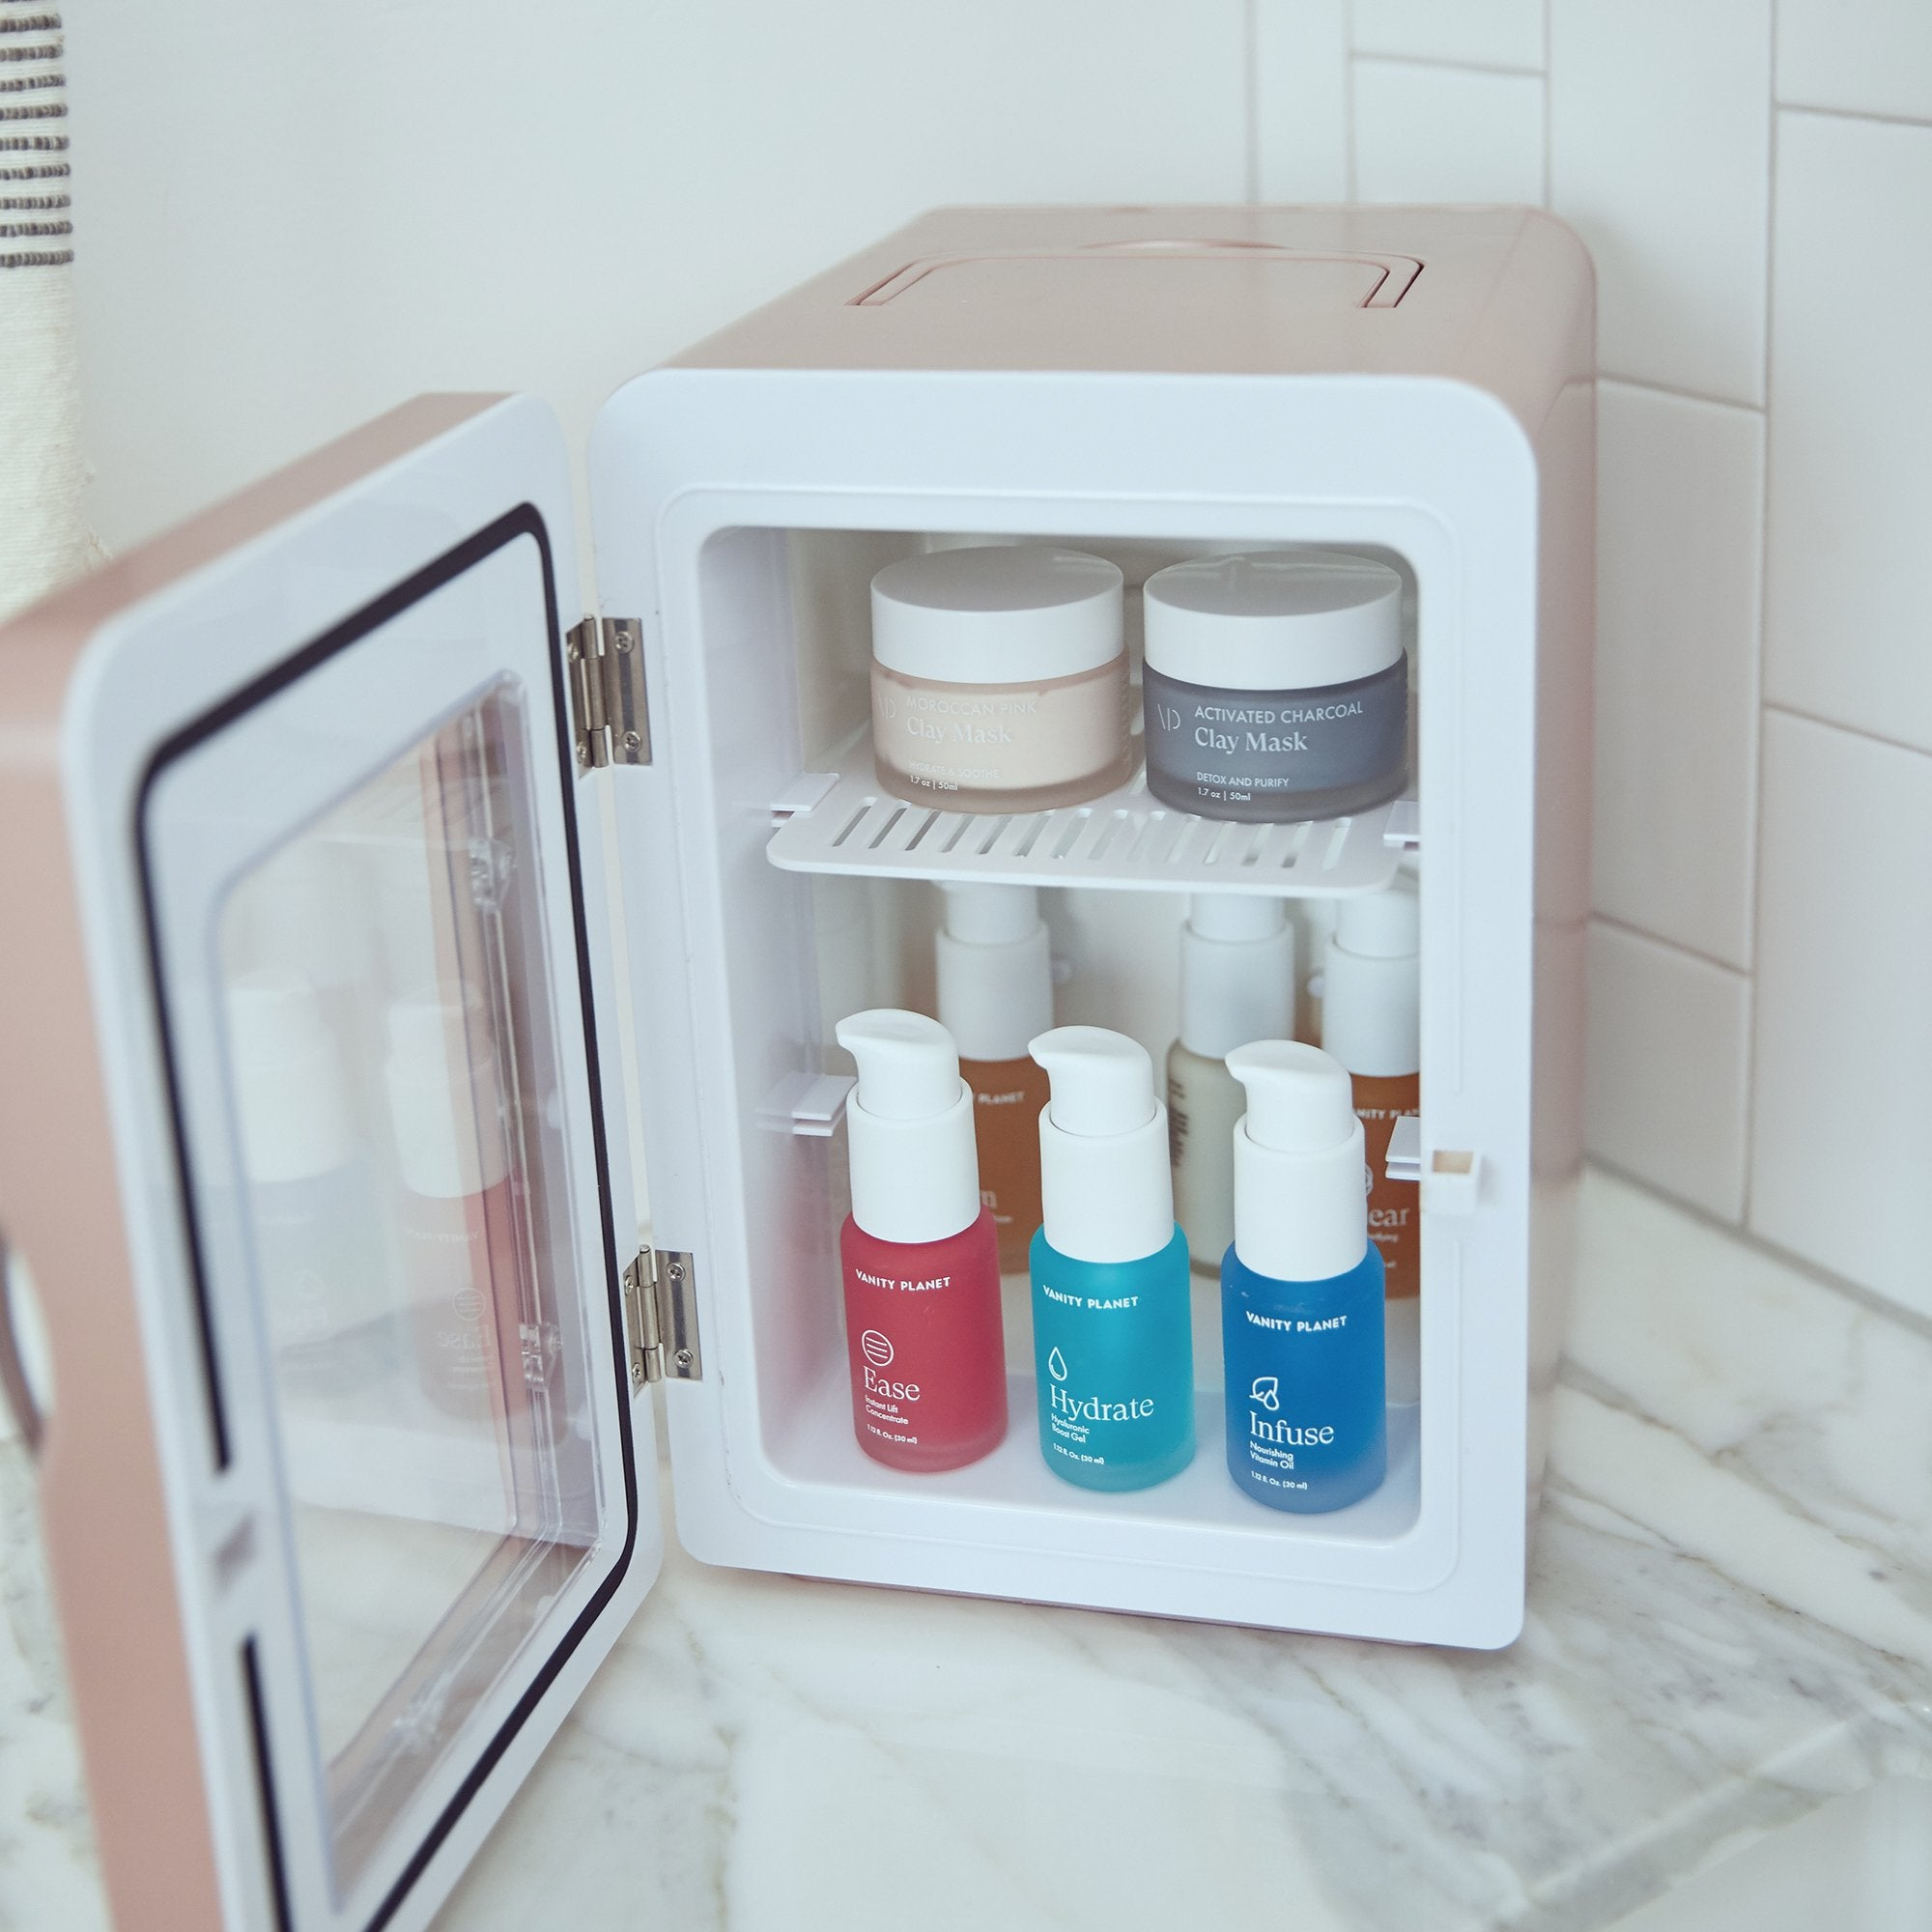 Fria | Skincare Fridge.